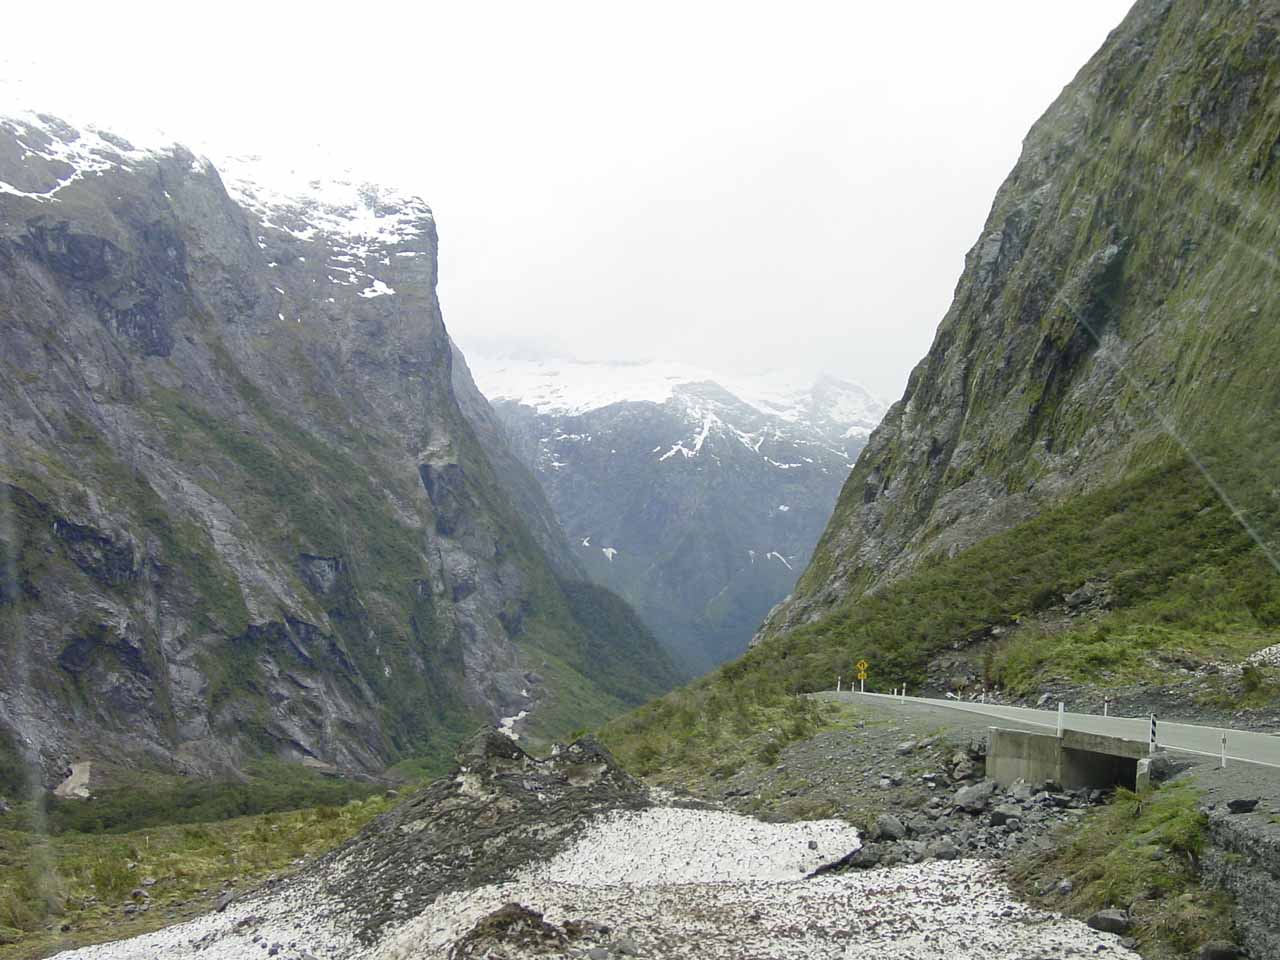 On the other side of the Homer Tunnel